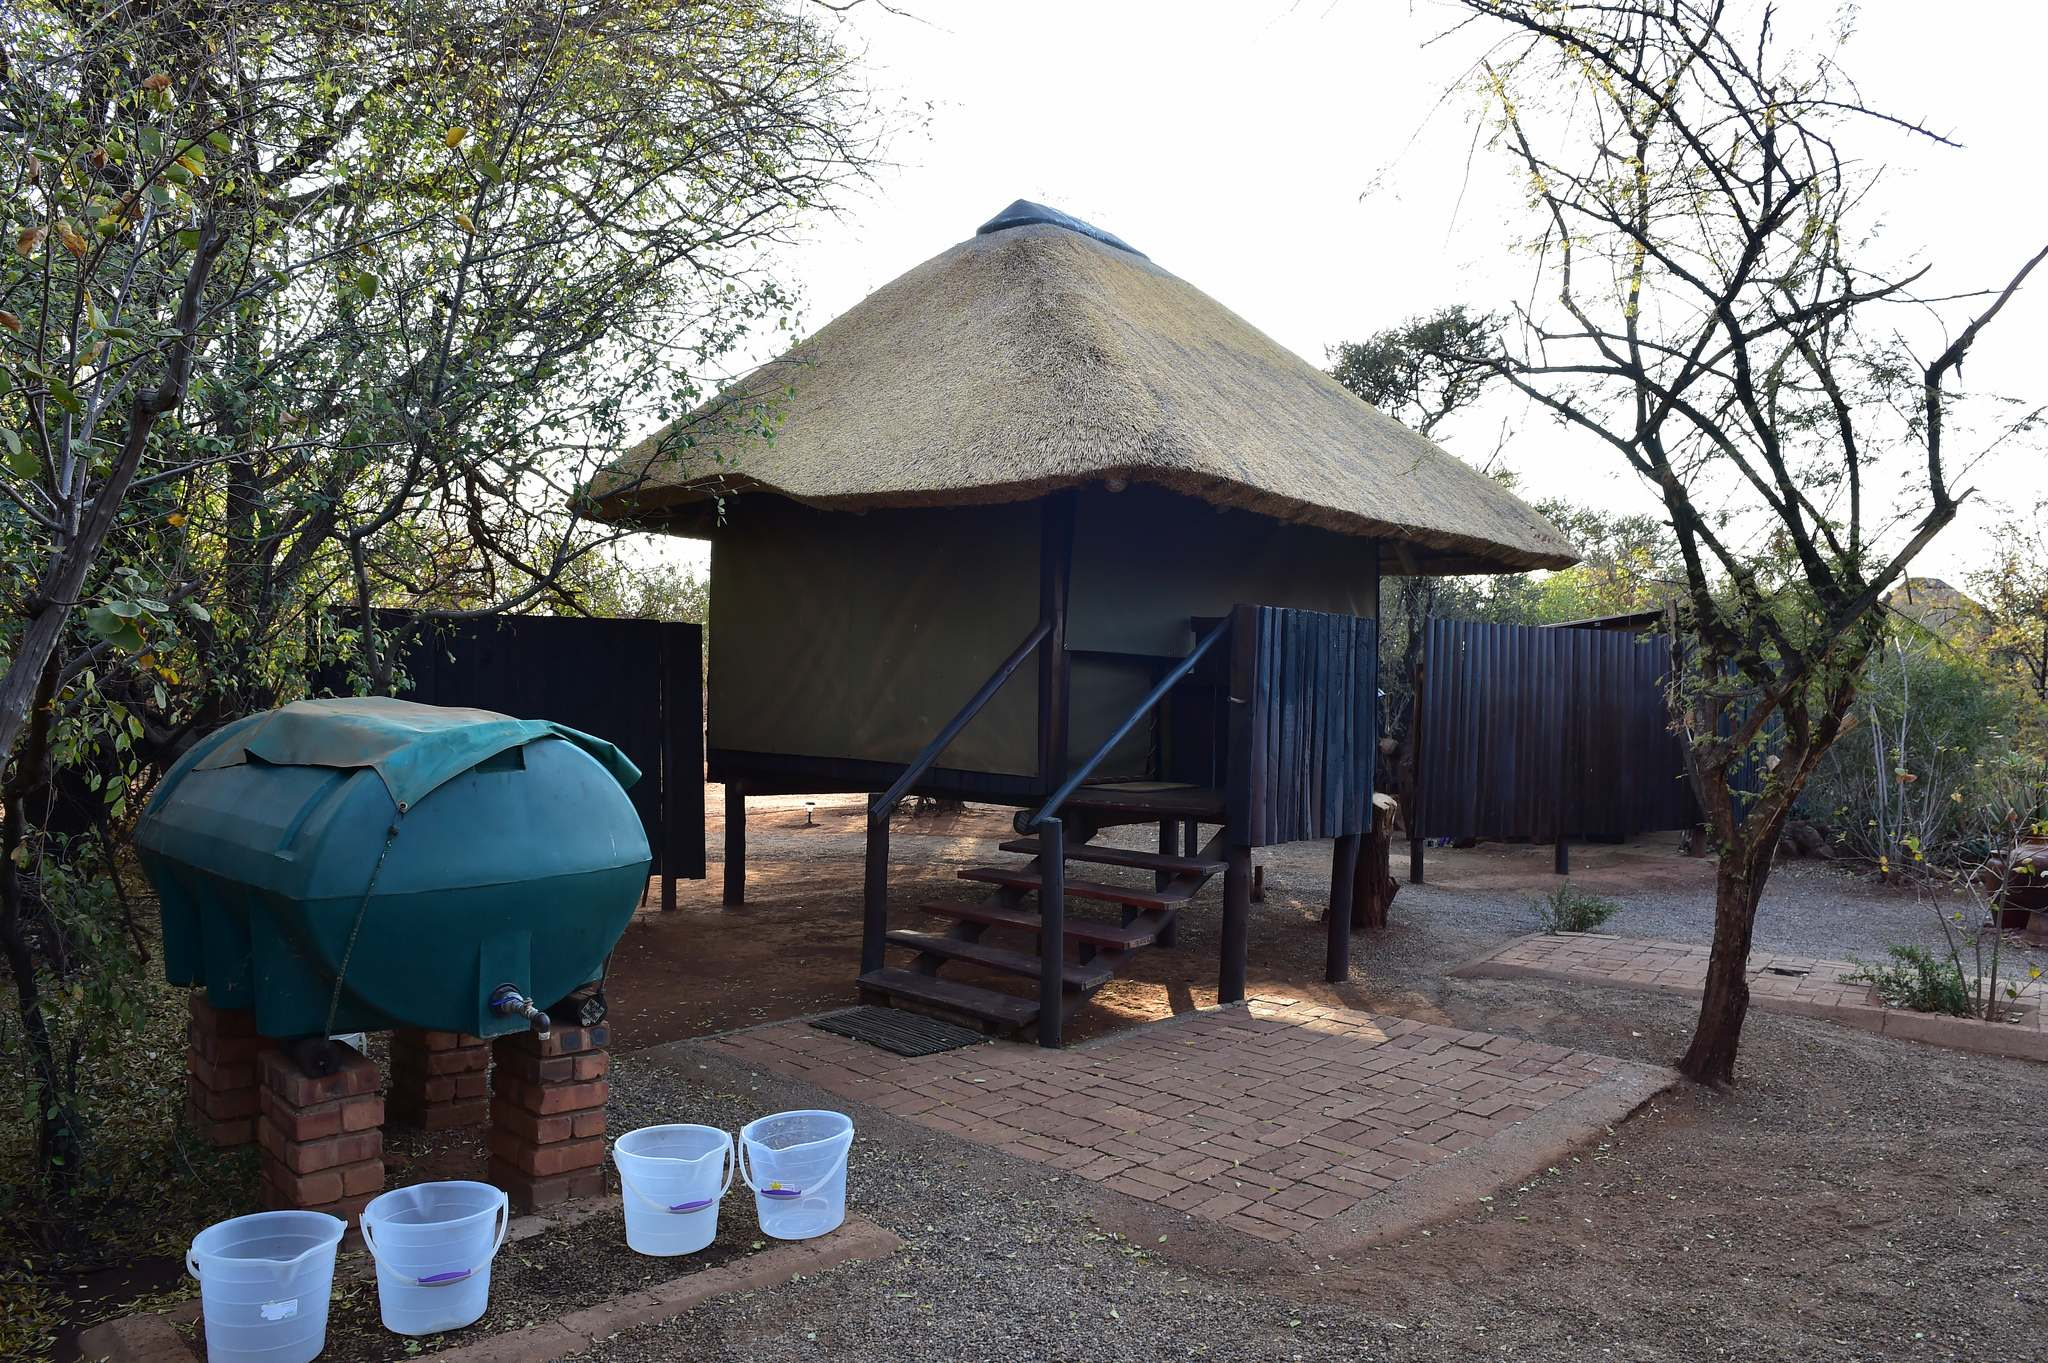 mosetlha bush camp8 Mosetlha Bush Camp at Madikwe Game Reserve